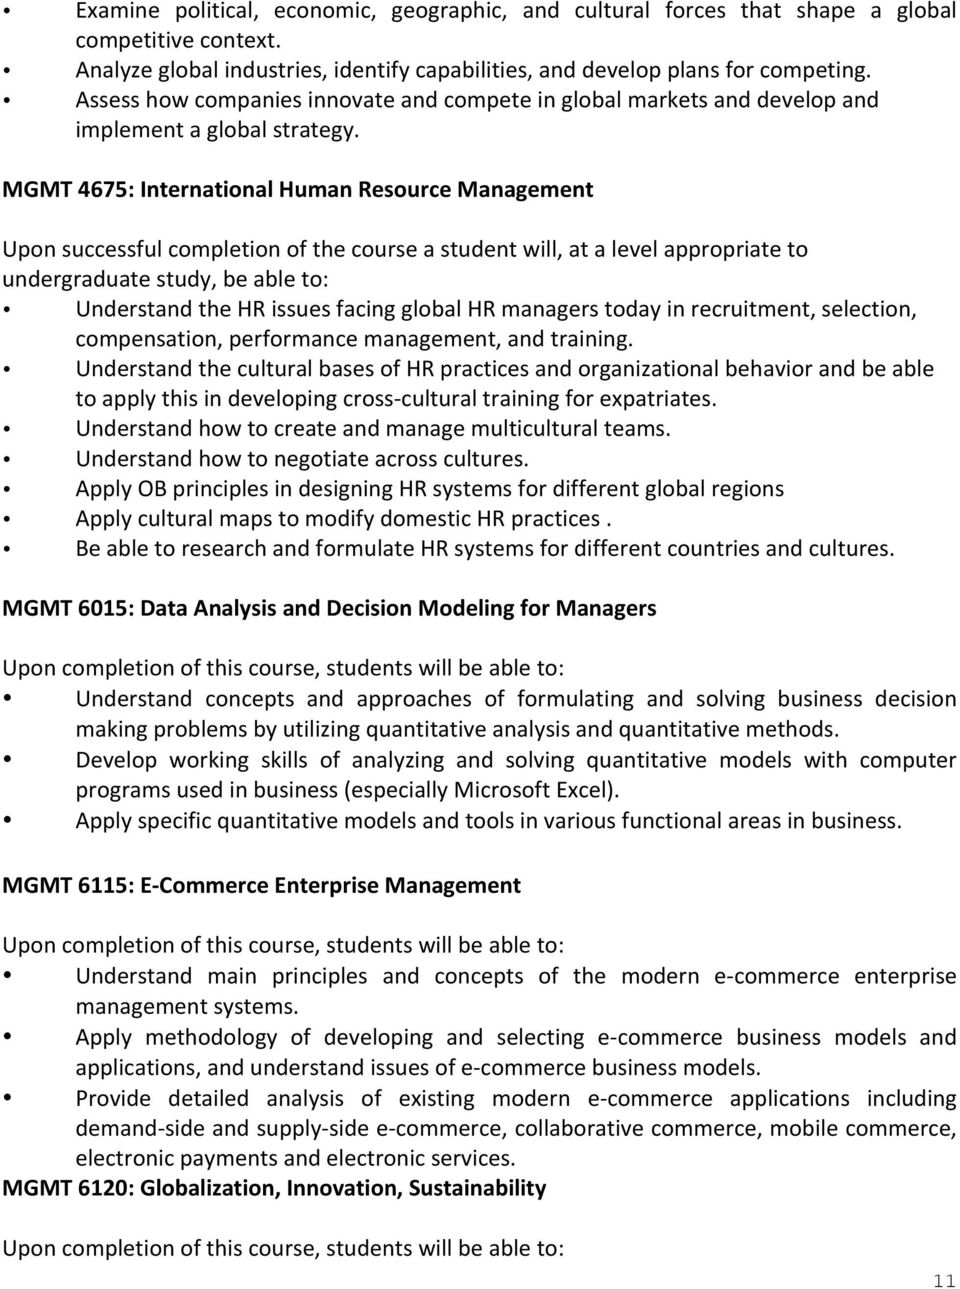 MGMT 4675: International Human Resource Management Upon successful completion of the course a student will, at a level appropriate to undergraduate study, be able to: Understand the HR issues facing